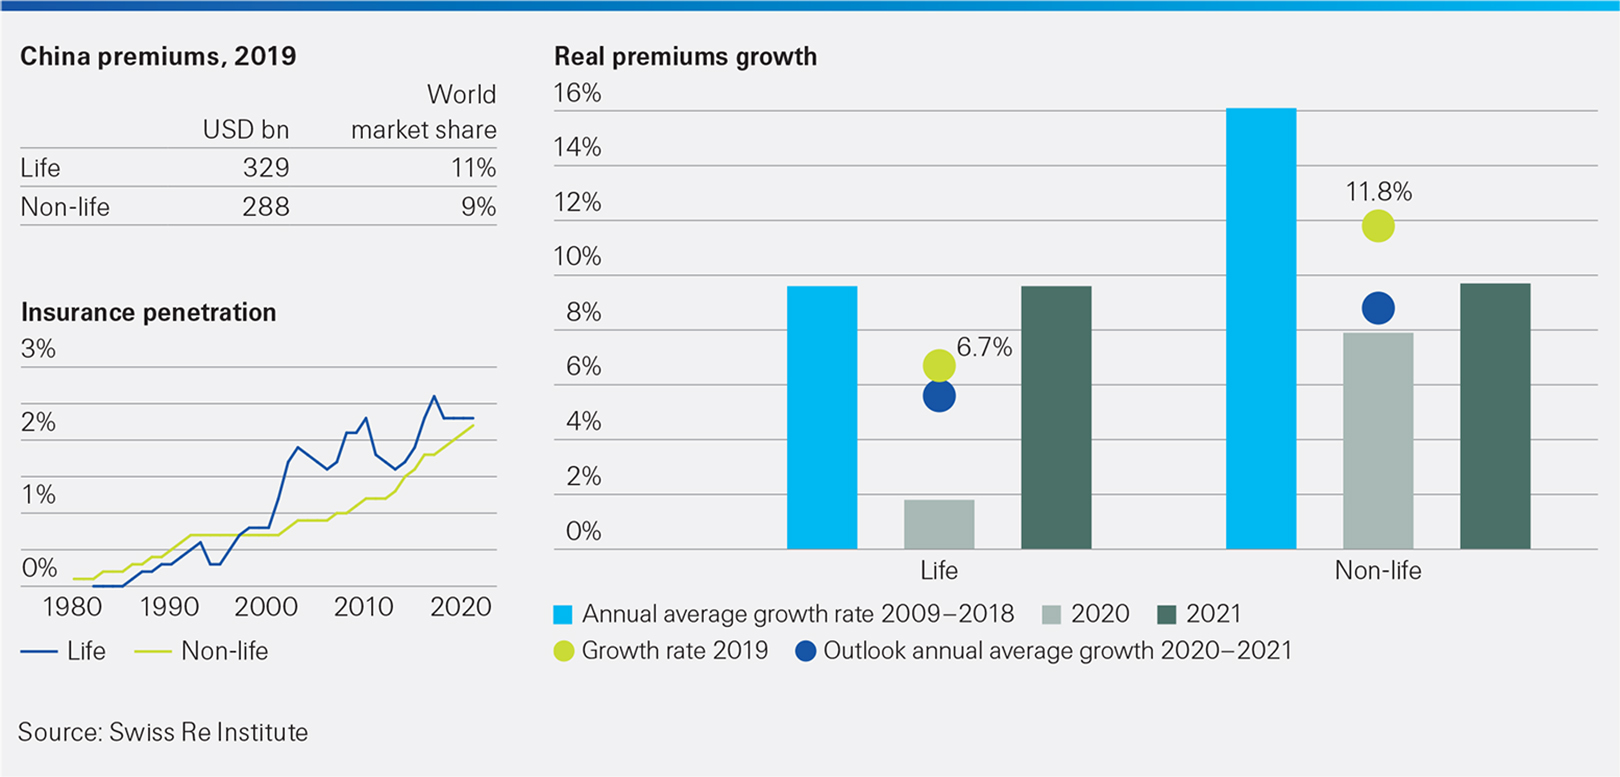 This infographic shows China - insurance penetration and premium growth rates. sigma 4/2020 extra